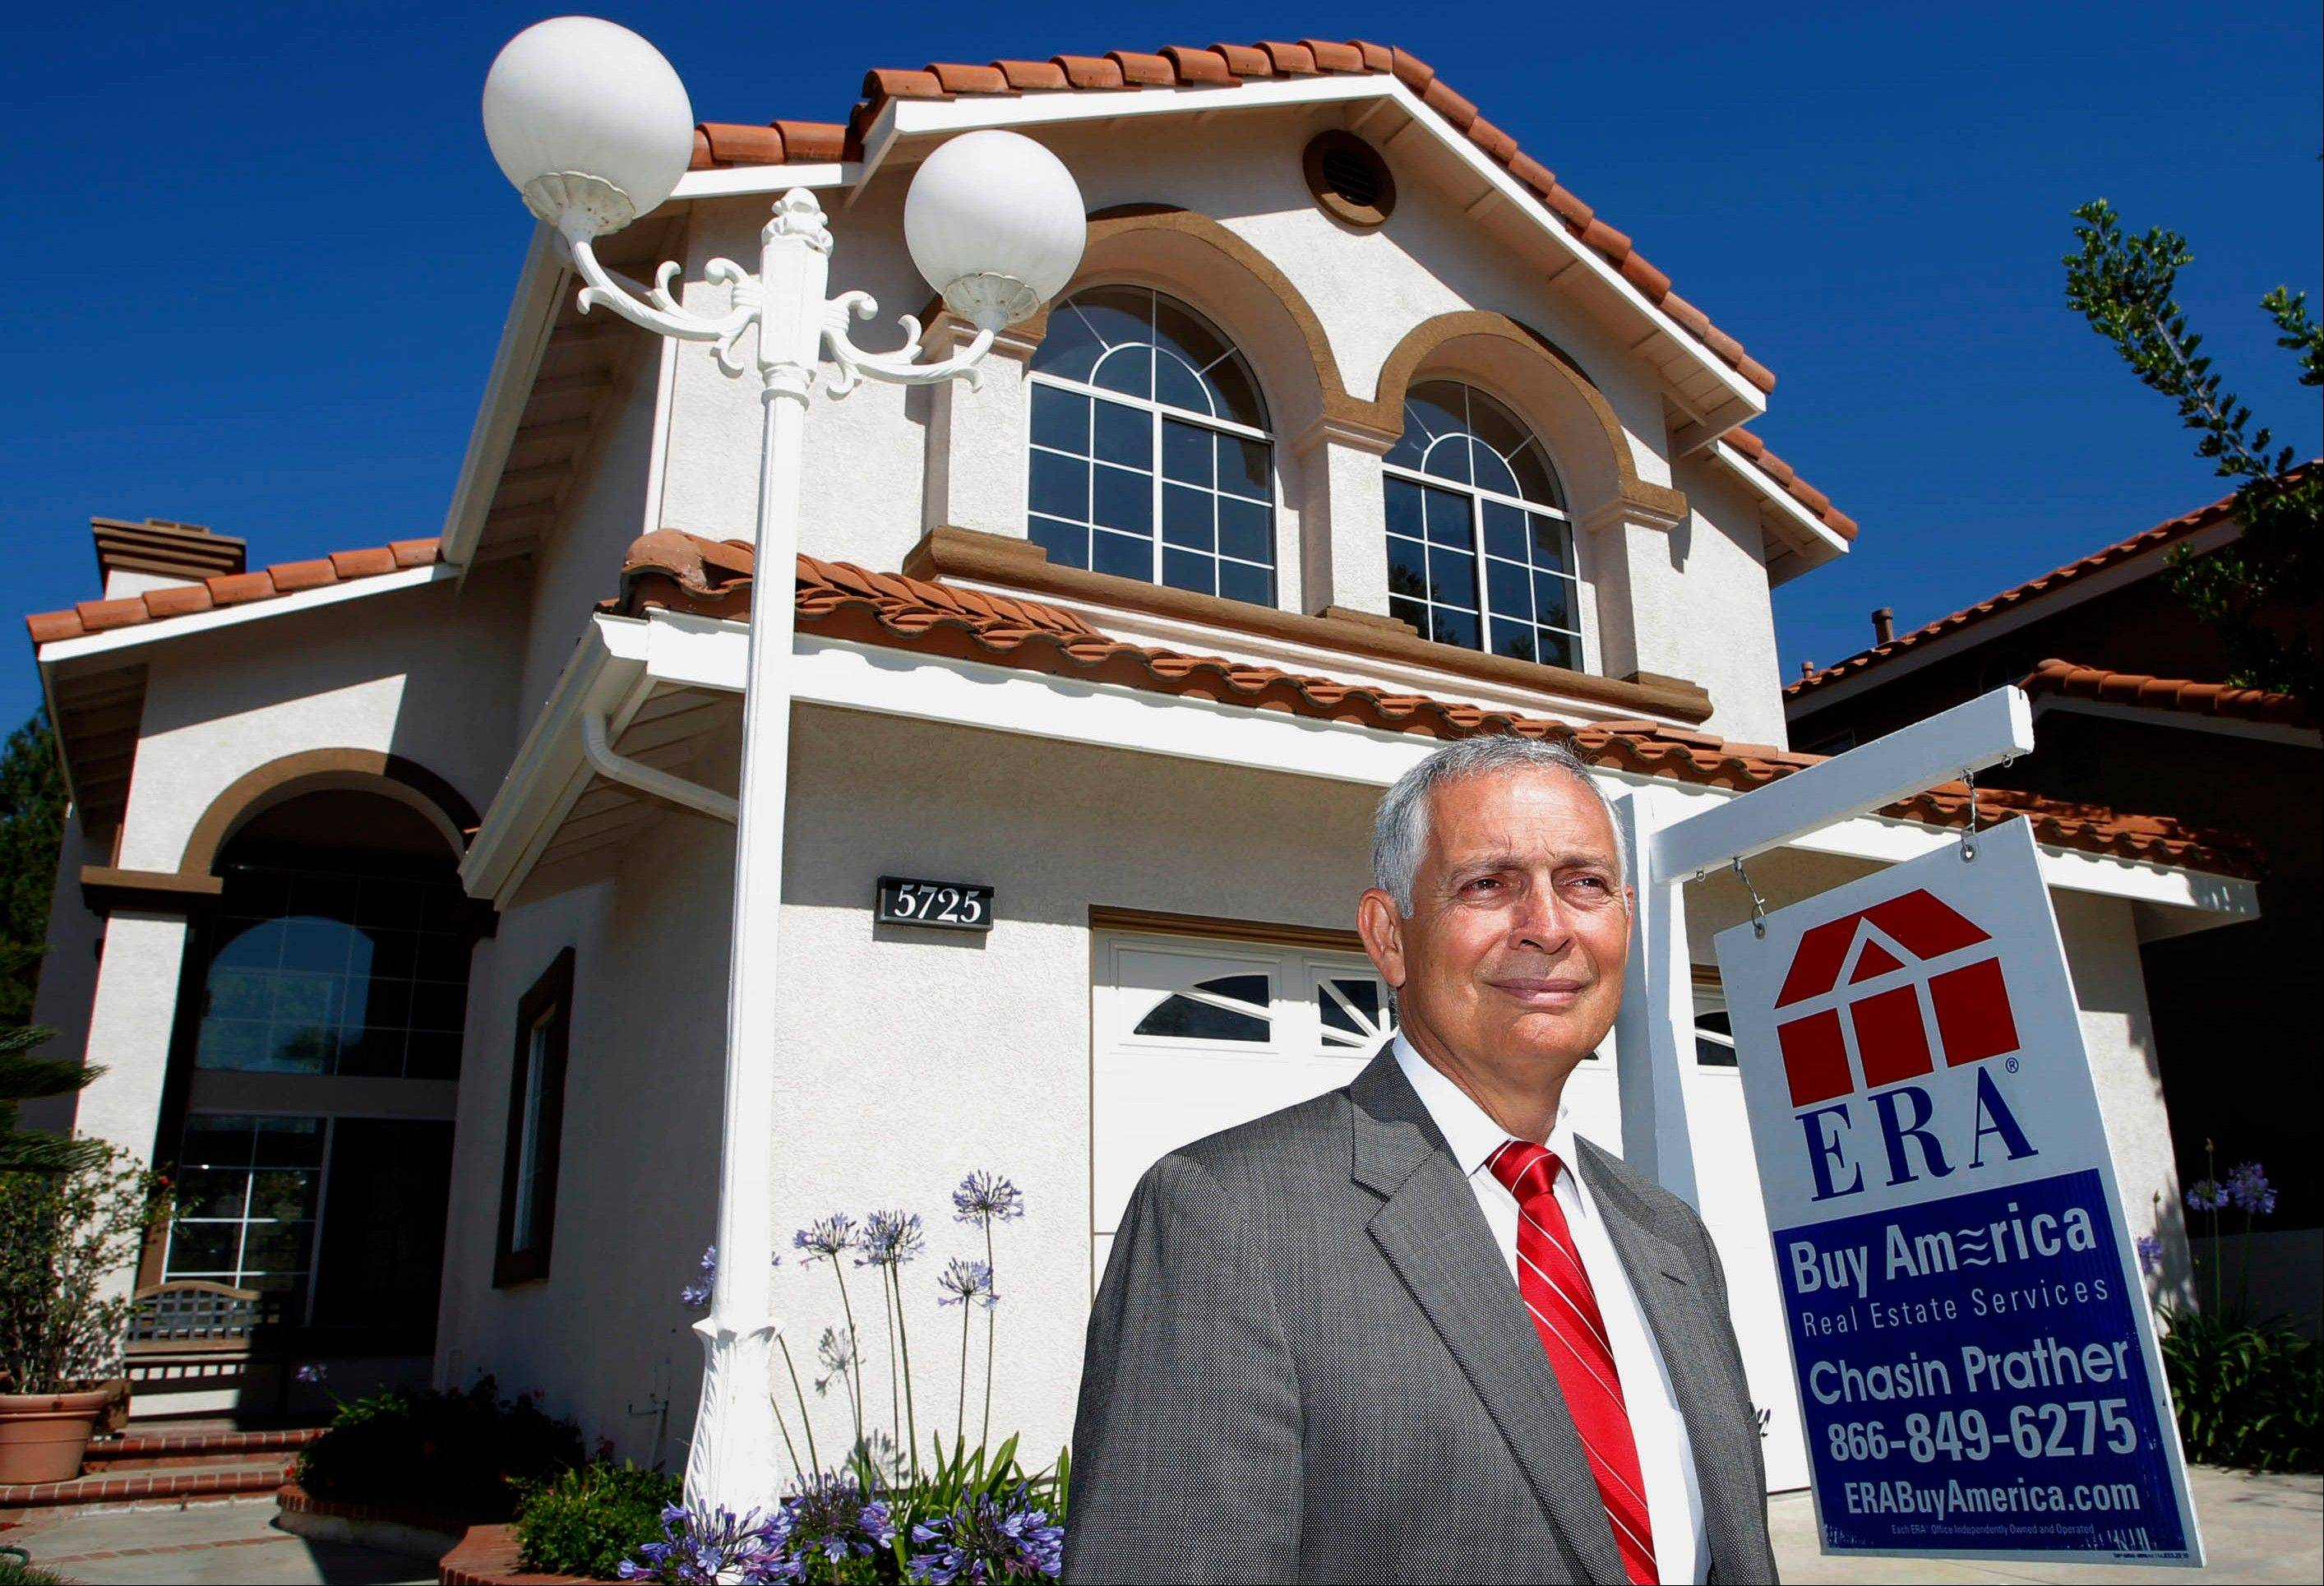 Mark Prather an ERA broker in Yorba Linda, Calif. Across the country, realtors and builders, many of whom are small businesses, are seeing a sales comeback.